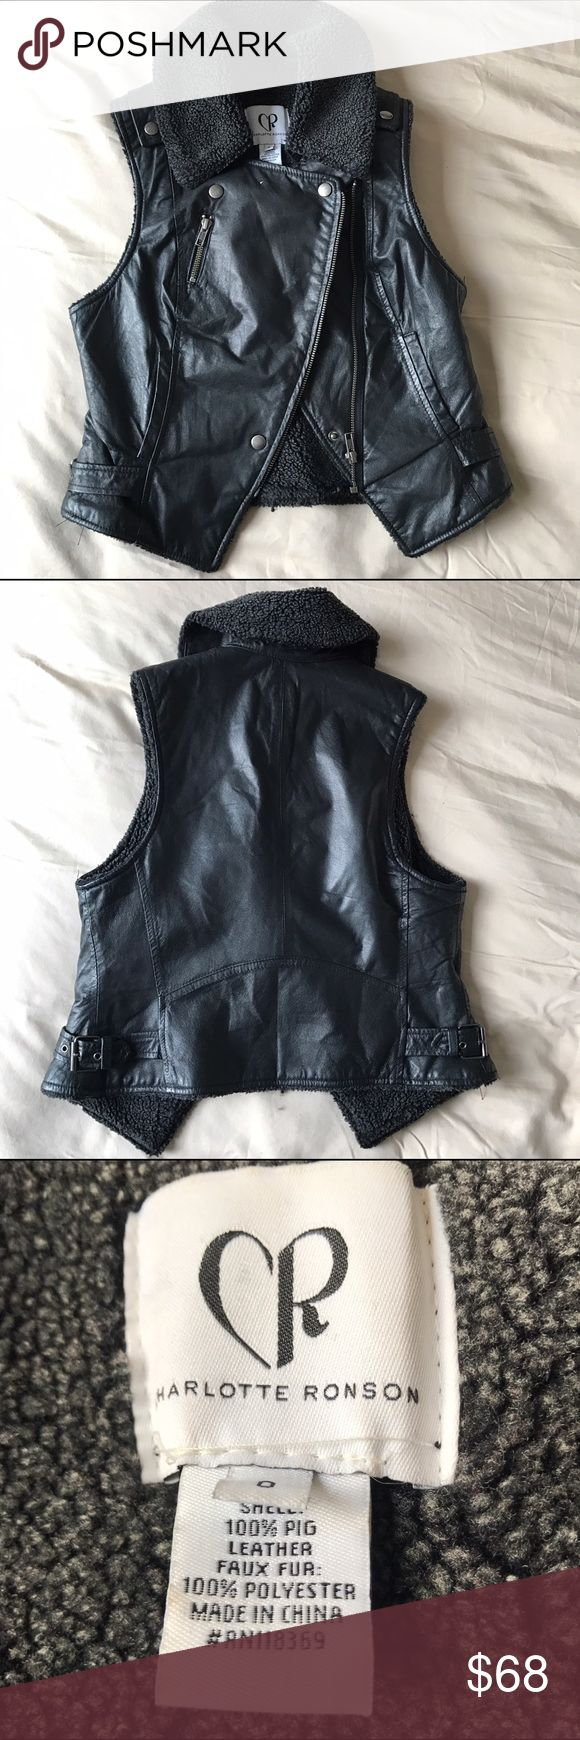 Charlotte Ronson Leather Moto Vest Faux Shearling Excellent moto vest, gently used. Genuine leather with faux Shearling lining. Very warm! Hardware is in excellent condition. It's the perfect layering piece. NOT ZARA but Charlotte Ronson. Tags: Acne, Zara, Vince, Theory, BB Dakota, Maje, Sandro. Better on 🅿️🅿️ or ♏️ Zara Jackets & Coats Vests